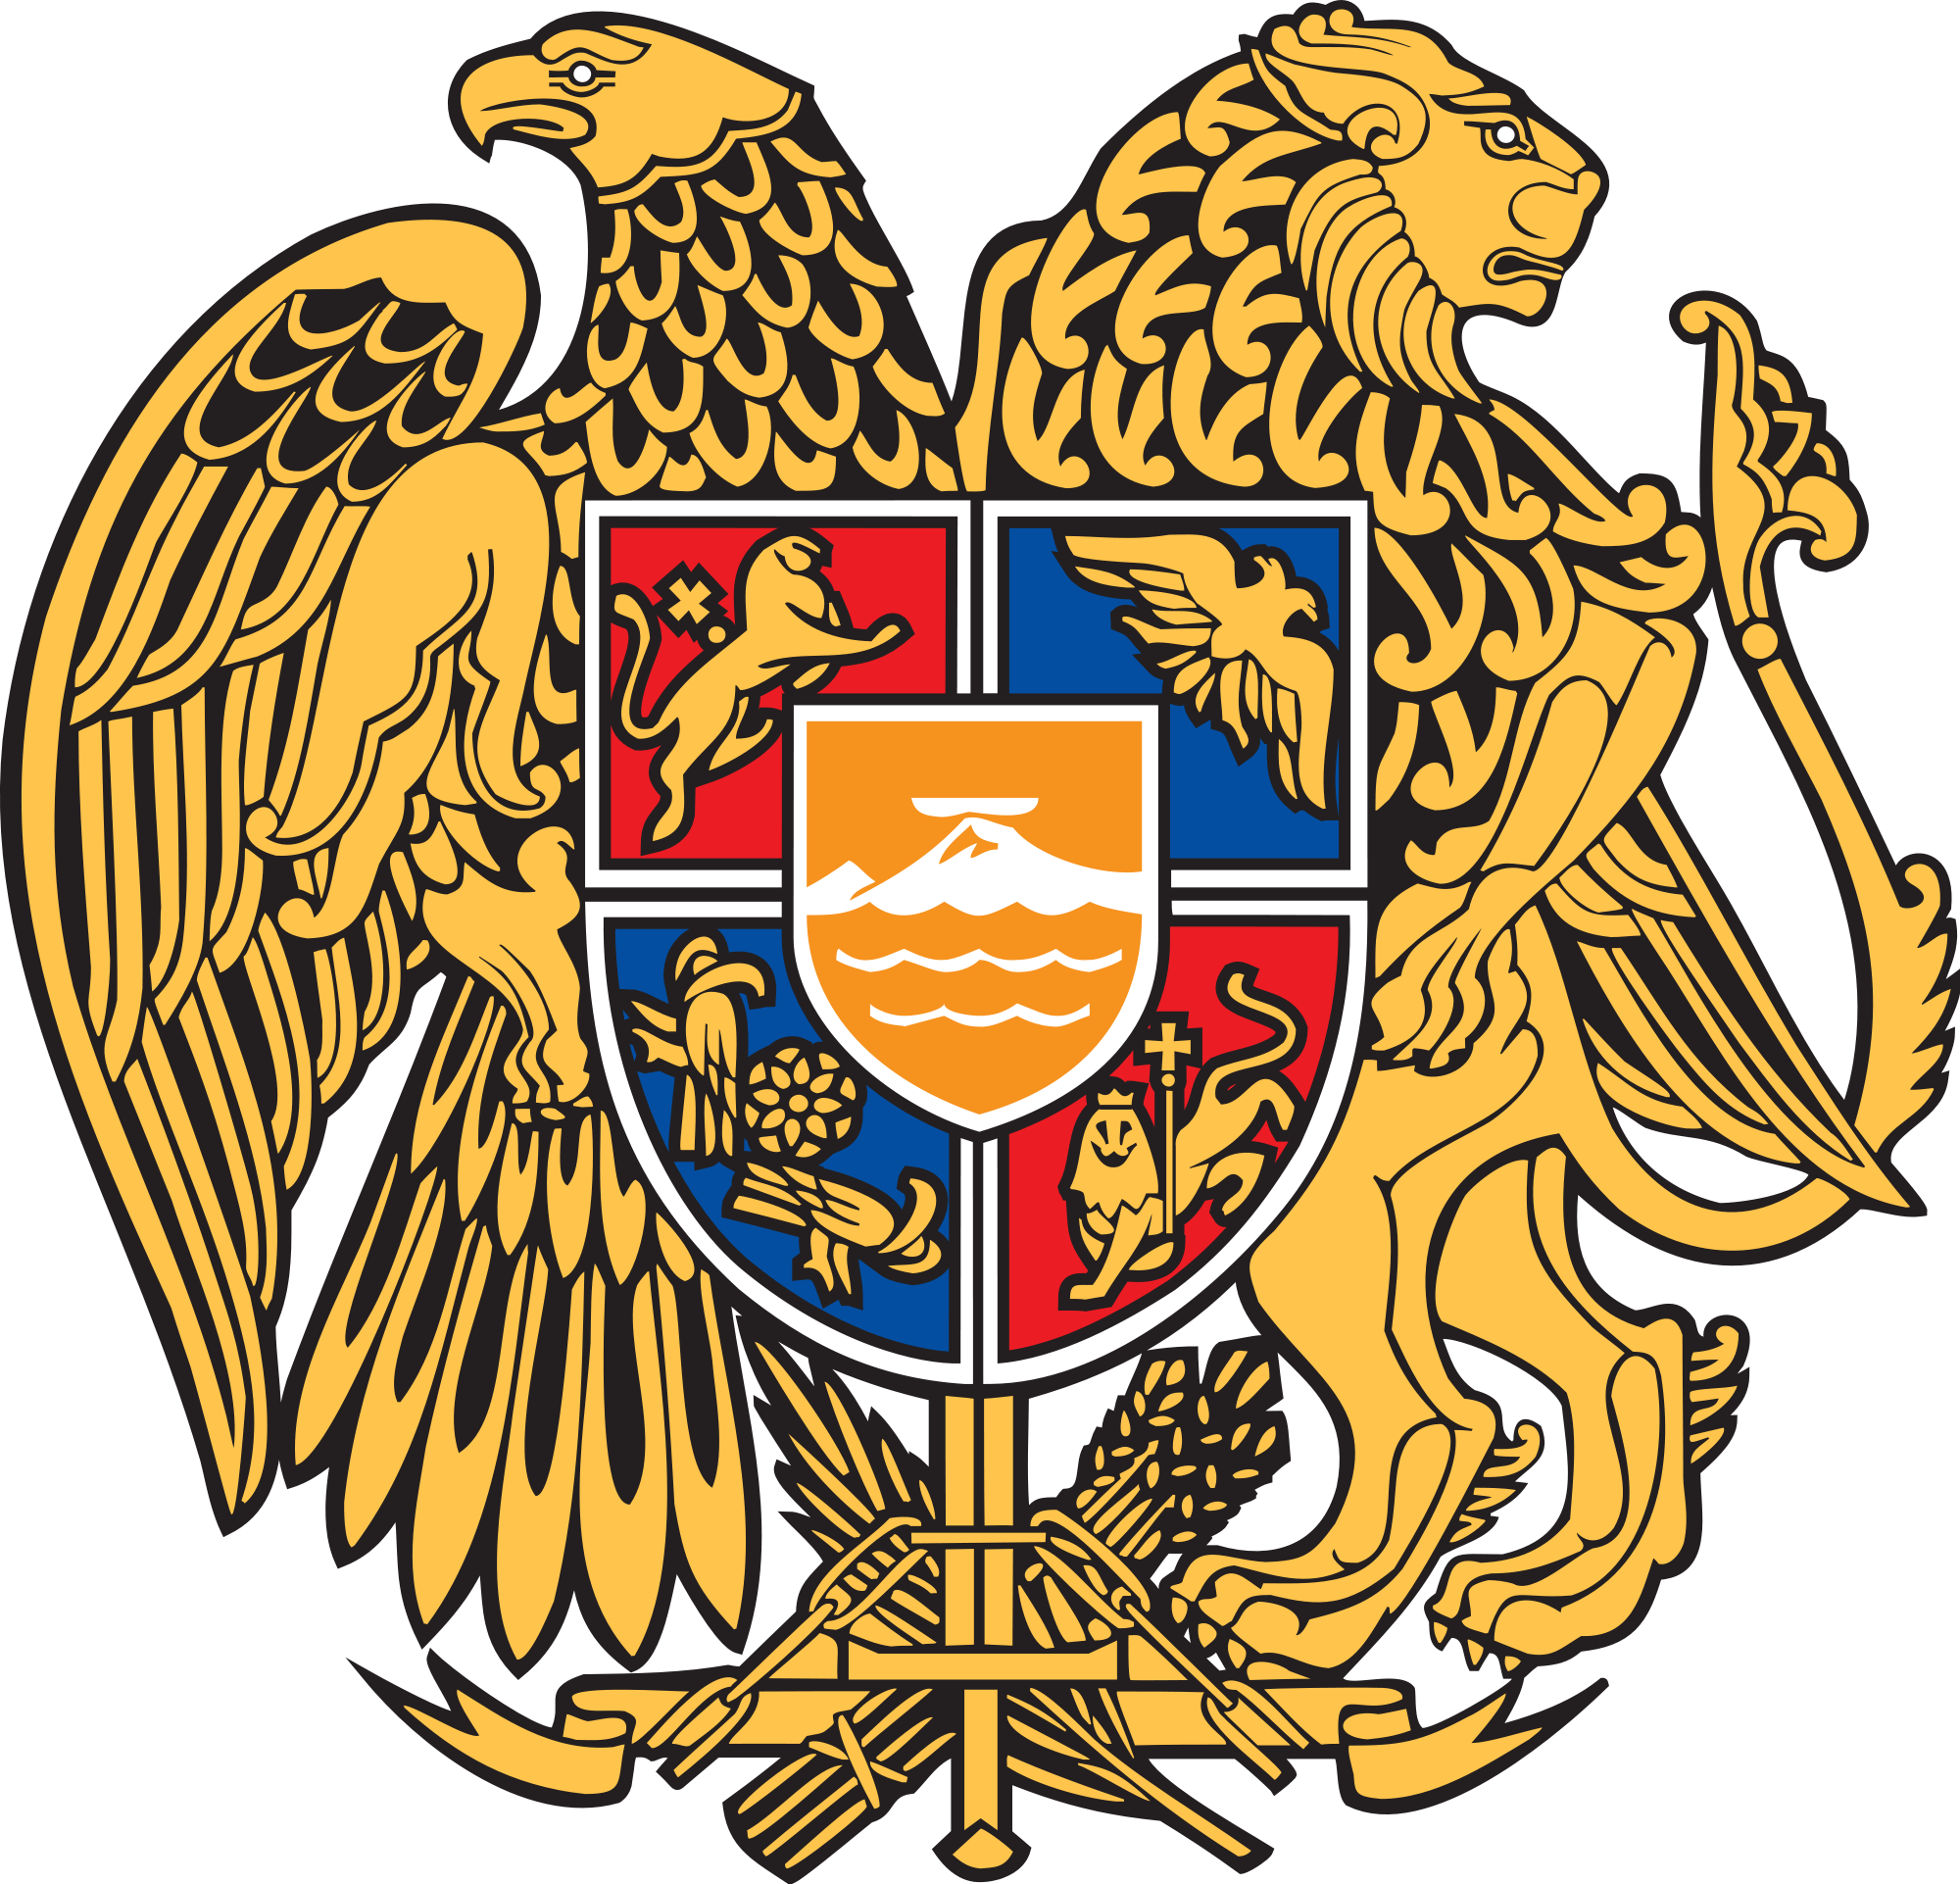 The republic of armenia declared its independence on the 21st of the coat of arms of armenia consists of an eagle and a lion supporting a shield the coat of arms combines new and old symbols the eagle and lion are biocorpaavc Images